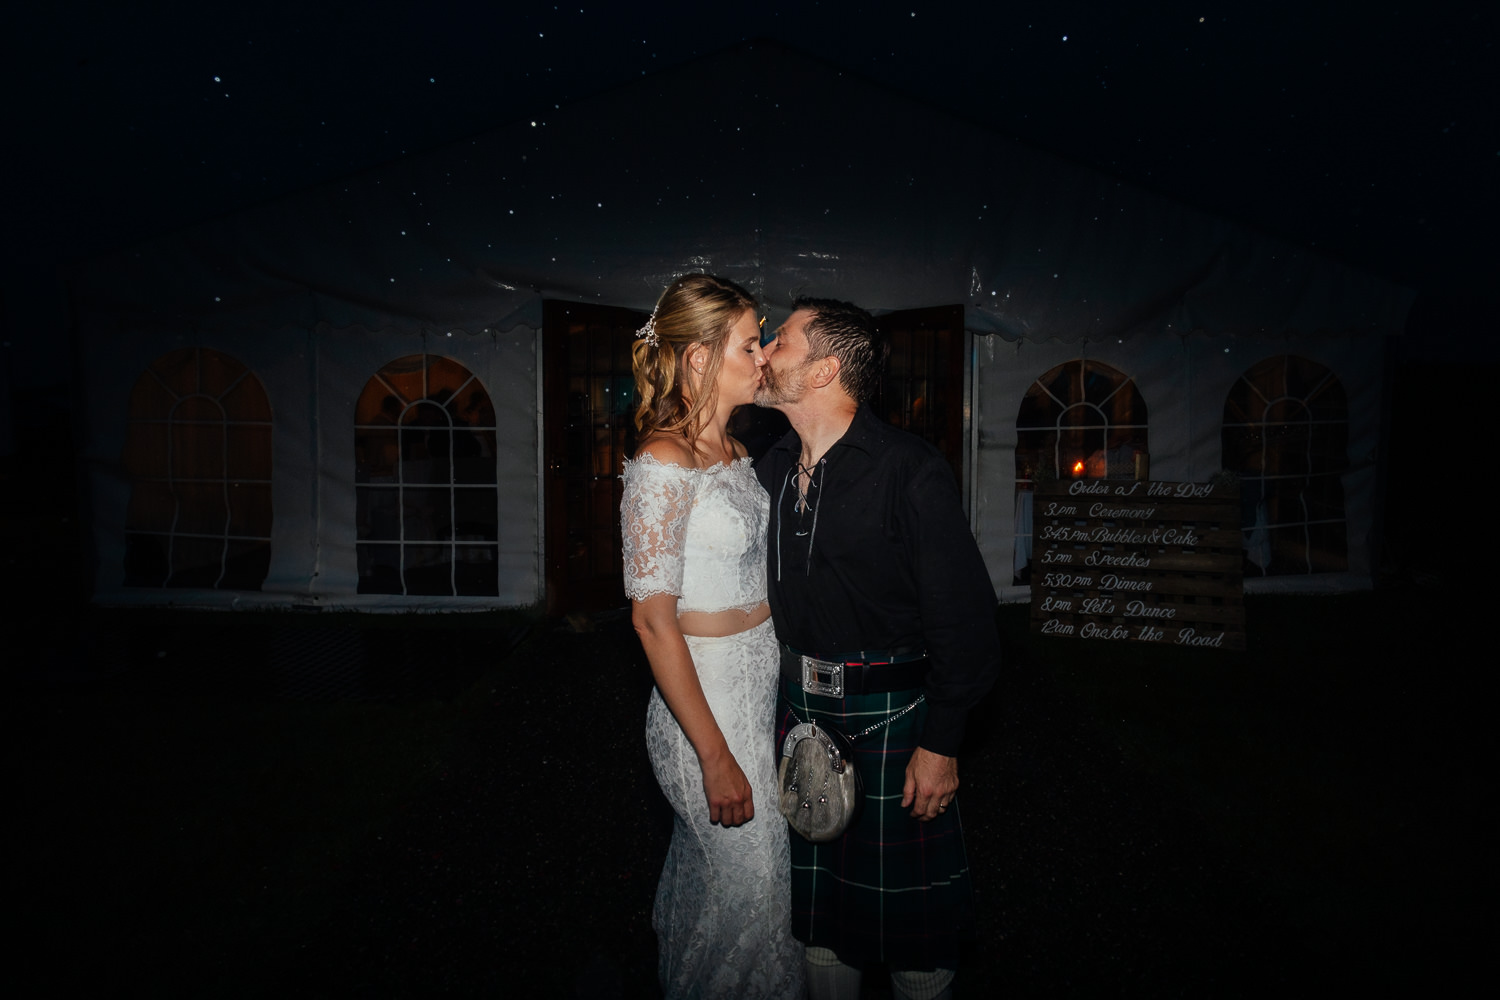 aberdeenshire farm wedding evening portrait bride groom outside in the dark